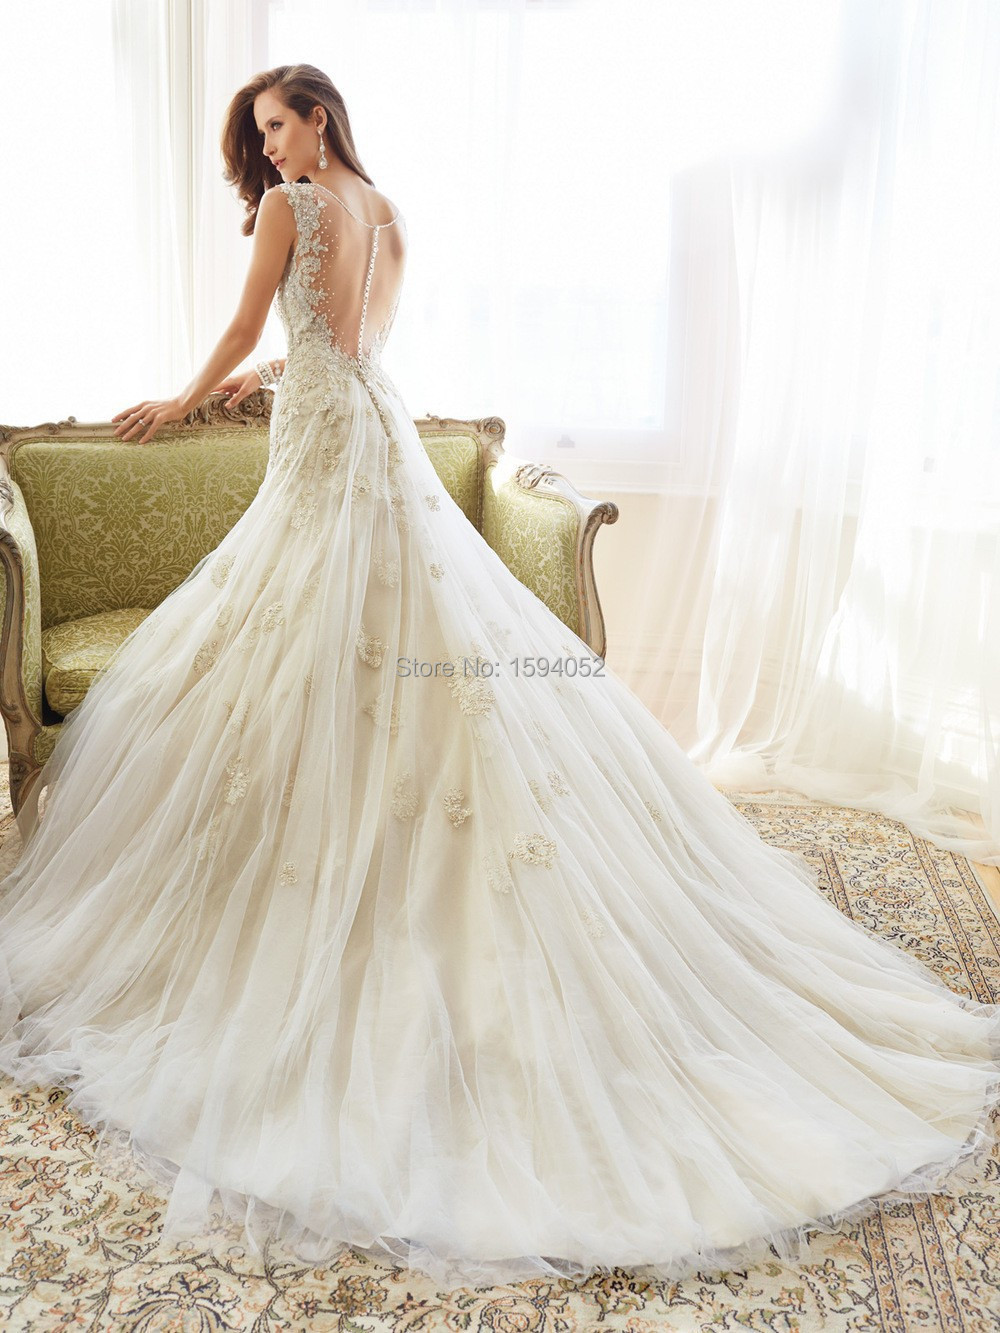 Fishtail Wedding Dress 2015 New European And American Big Shoulders Qi Luxury Long Tail Bride Custom In Dresses From Weddings Events